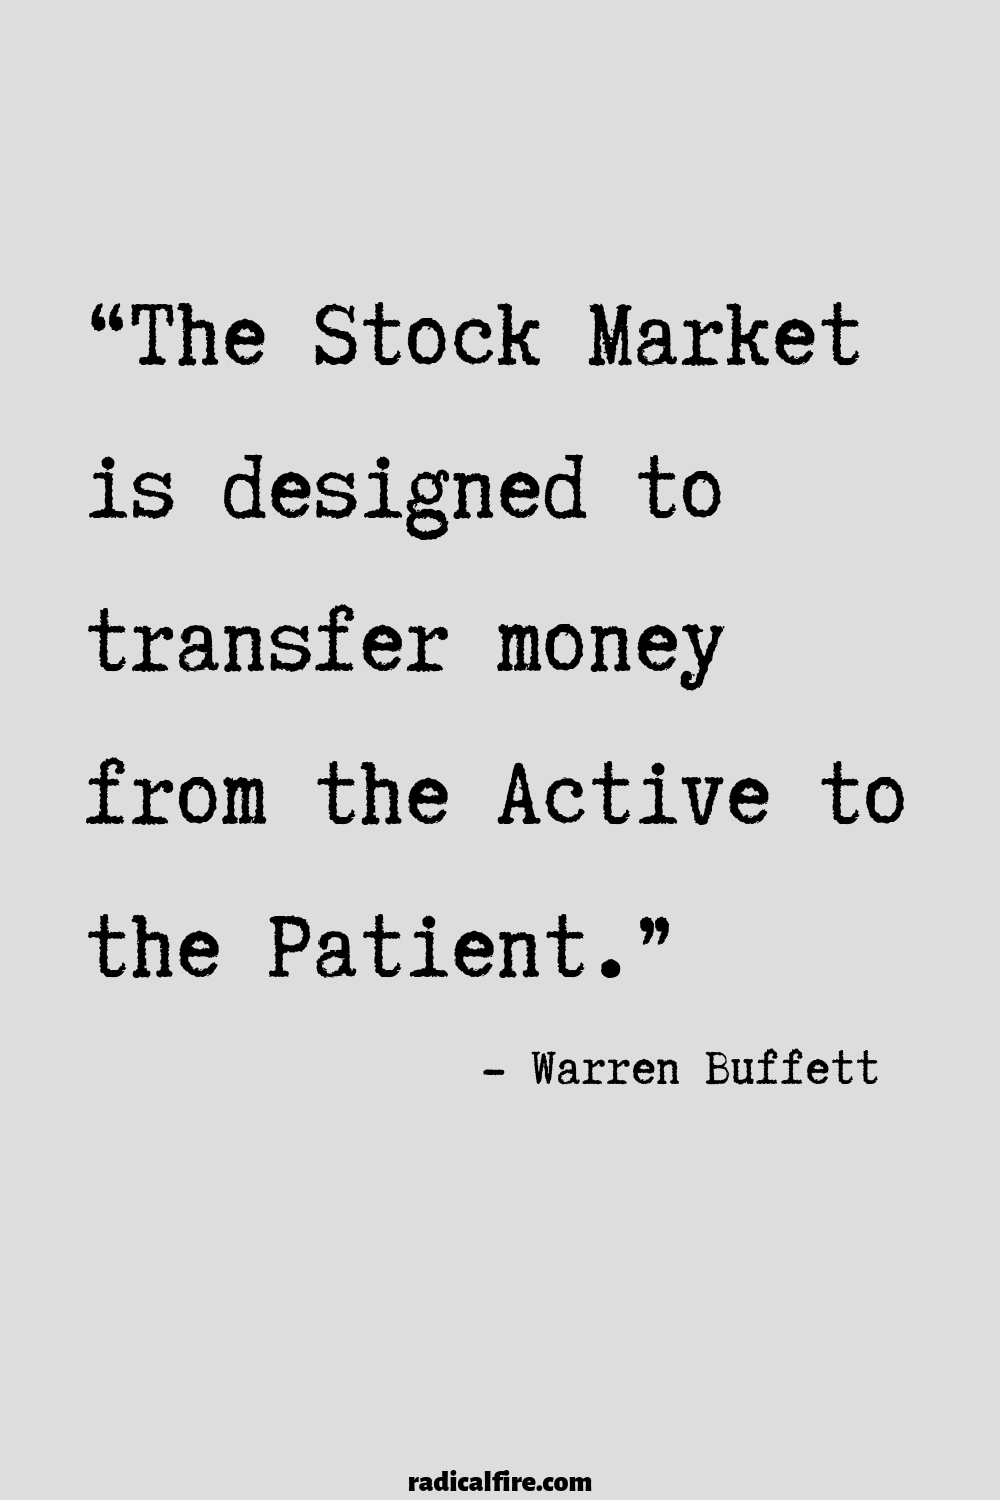 Warren Buffett Patience Quote : warren, buffett, patience, quote, Inspirational, Money, Quotes, Radical, Quotes,, Investment, Finance